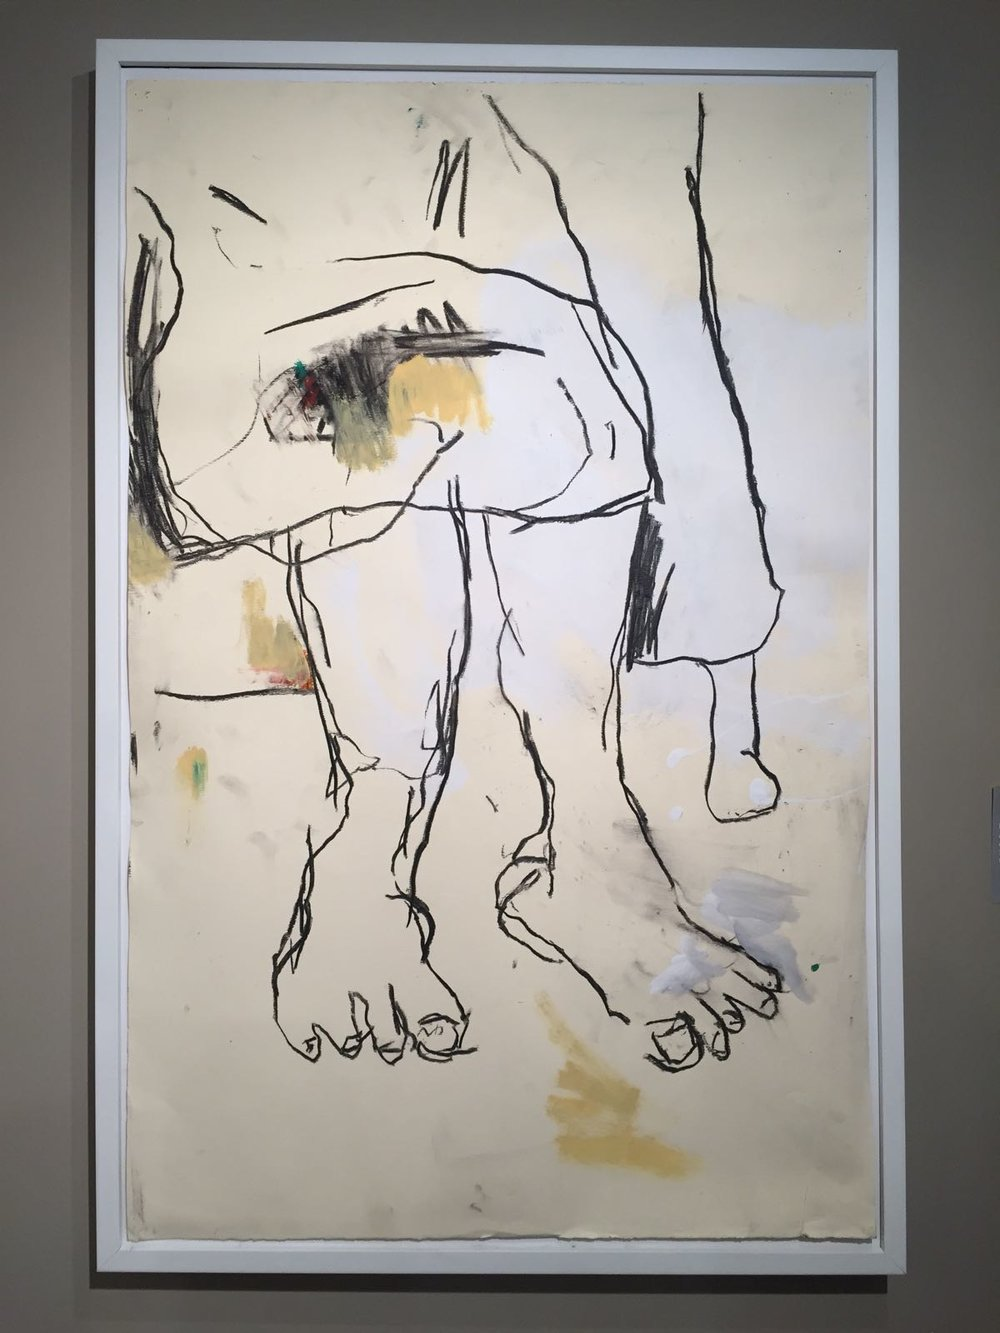 "Heino Schmid. ""Ma II"", acrylic, charcoal and oil pastel on paper. 2018.  All images courtesy of the D'Aguilar Art Foundation."